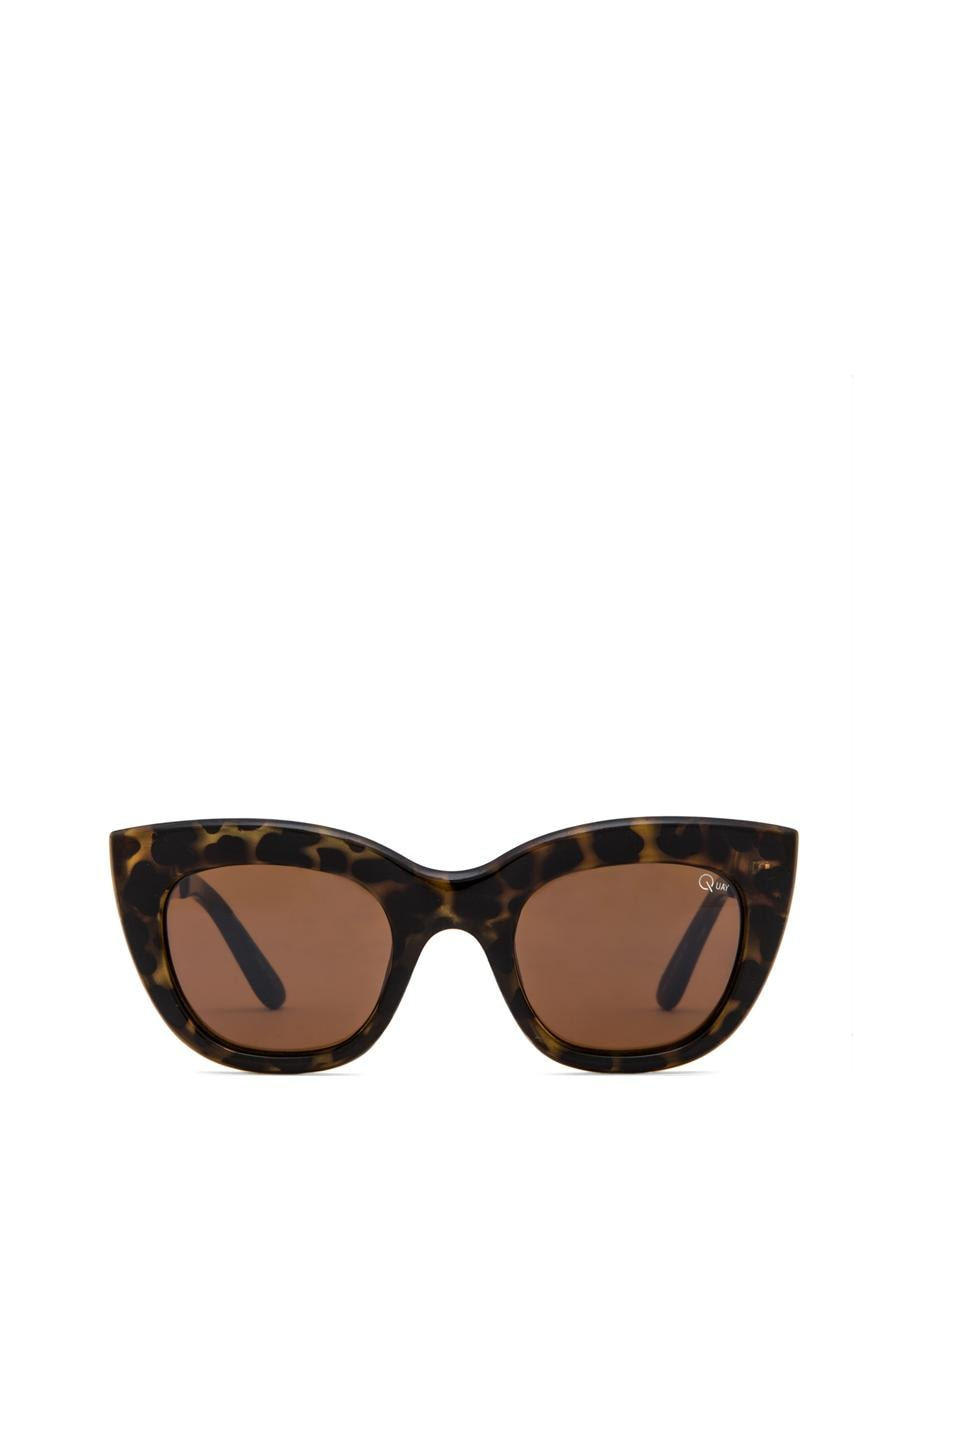 Quay Billy Sunglasses in Leopard